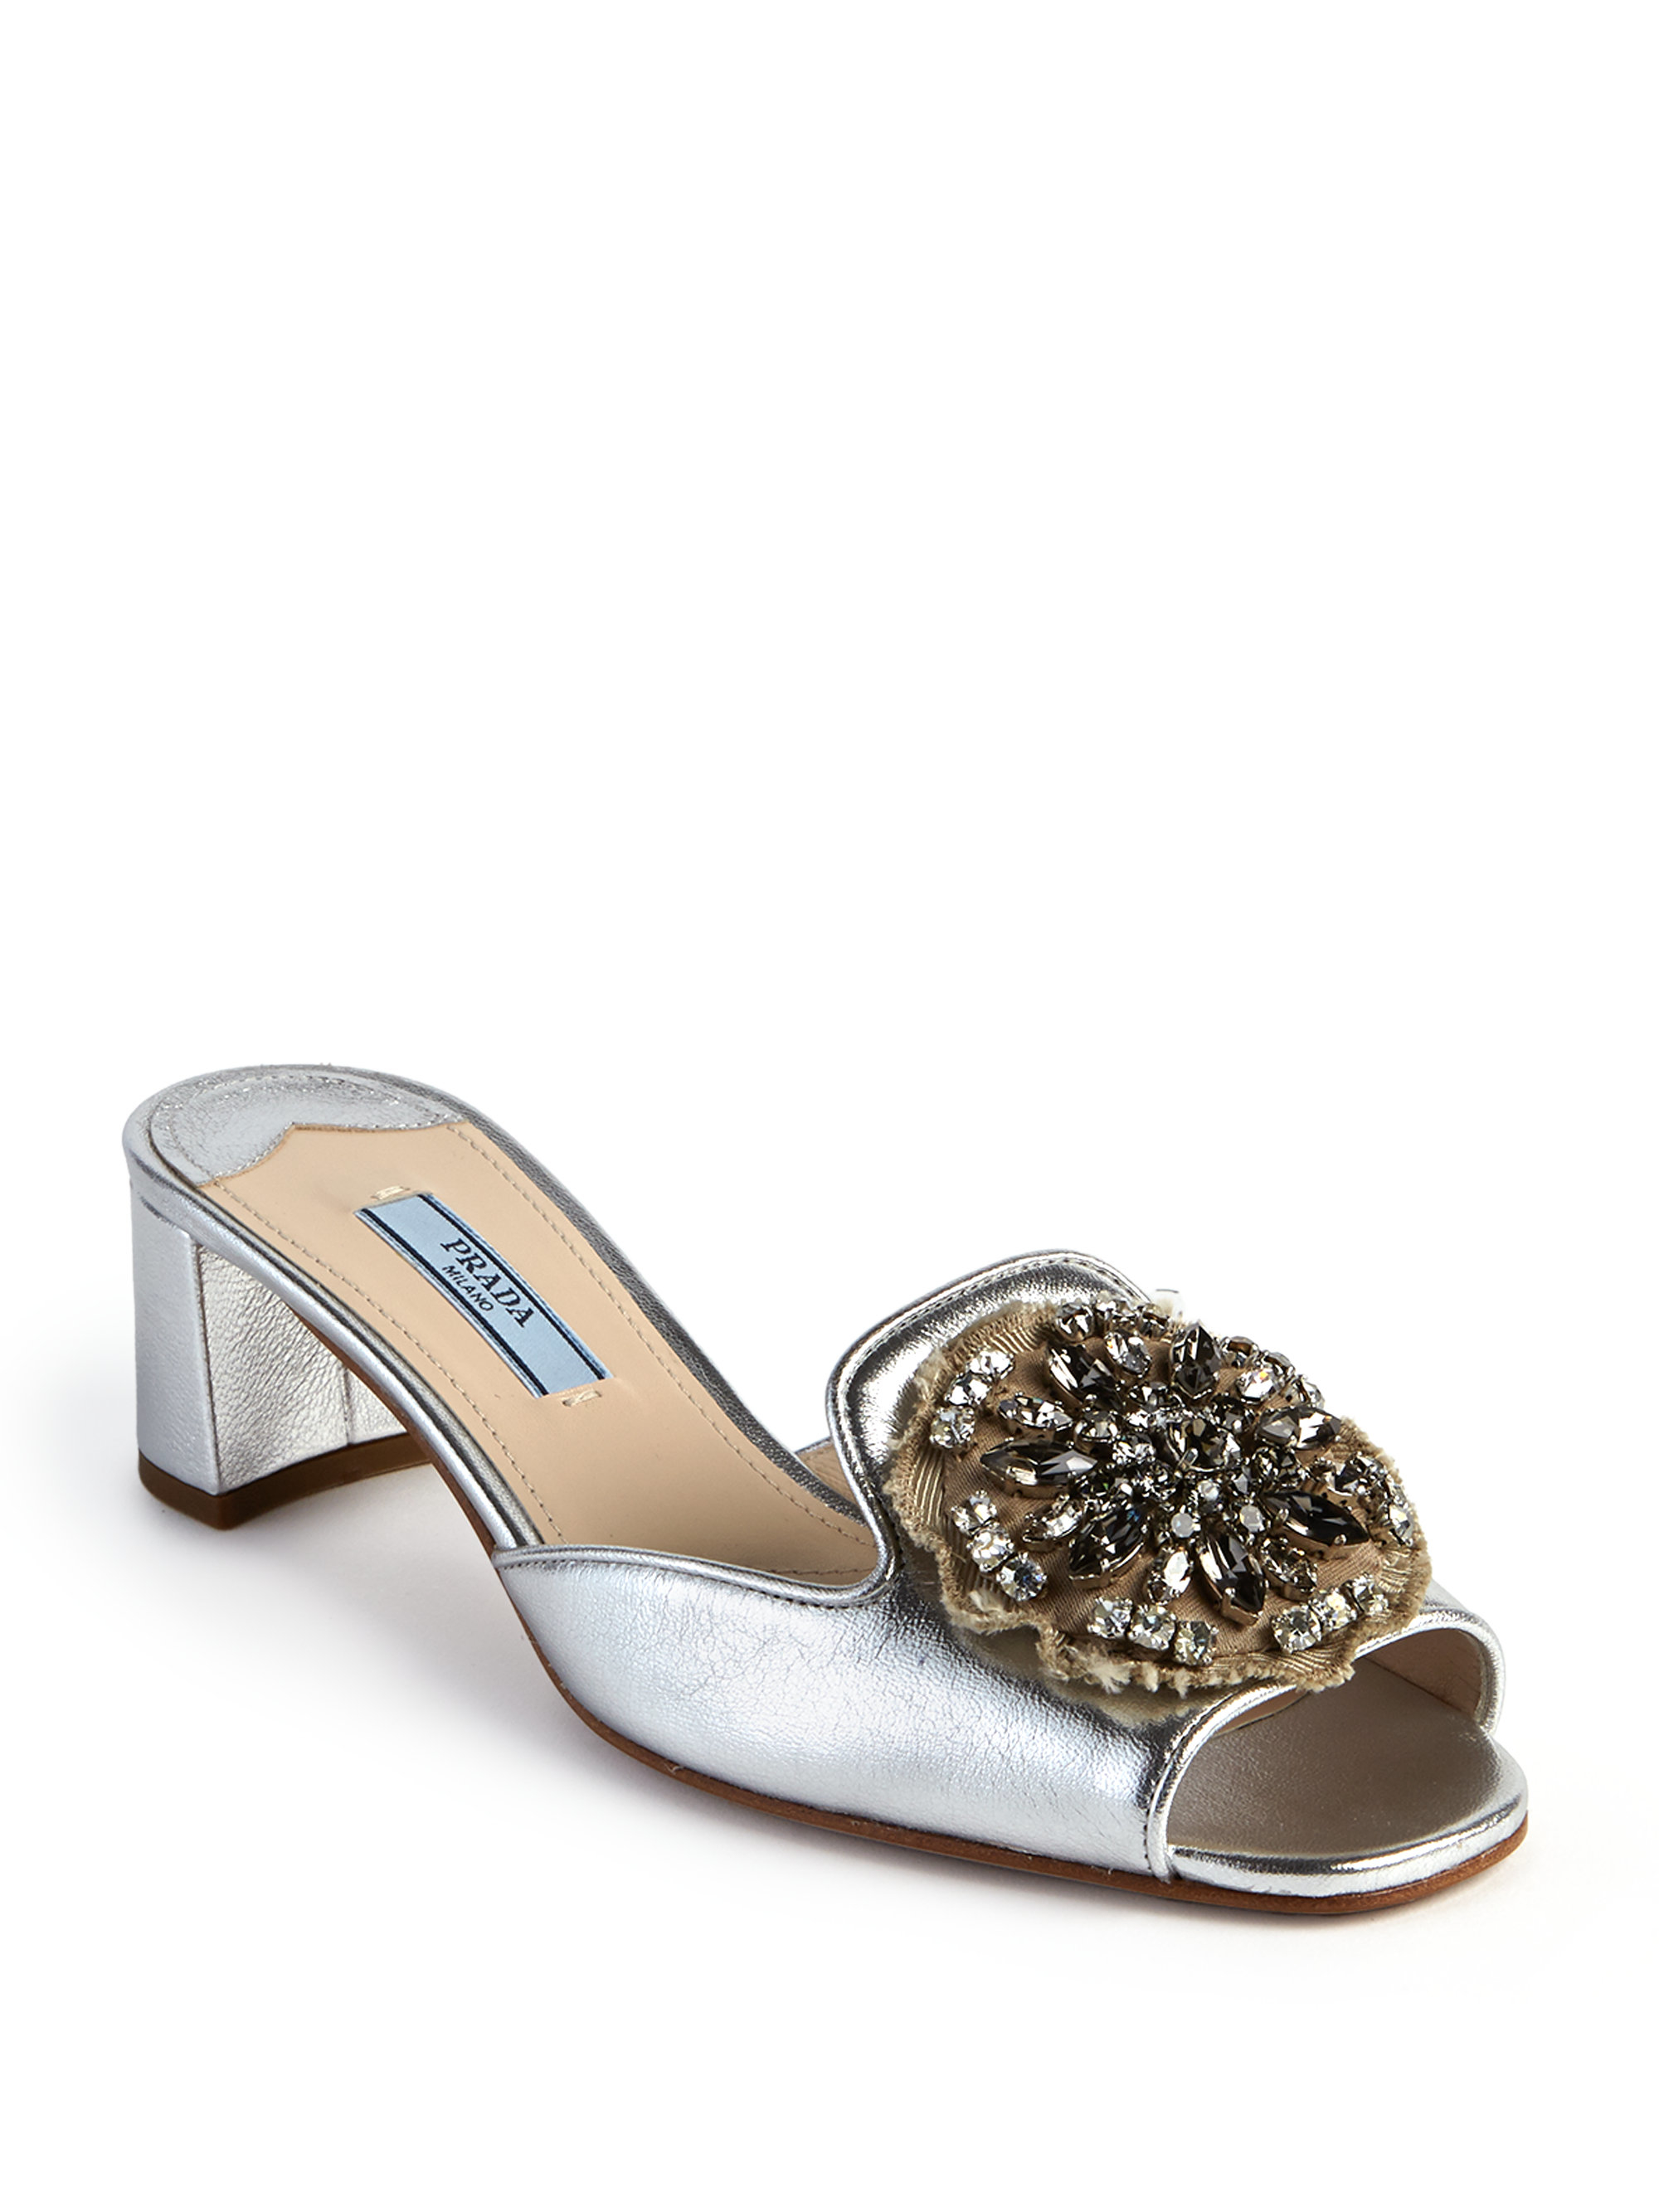 outlet prices online cheap price Prada Leather Embellished Sandals enjoy shopping w23JFDUF